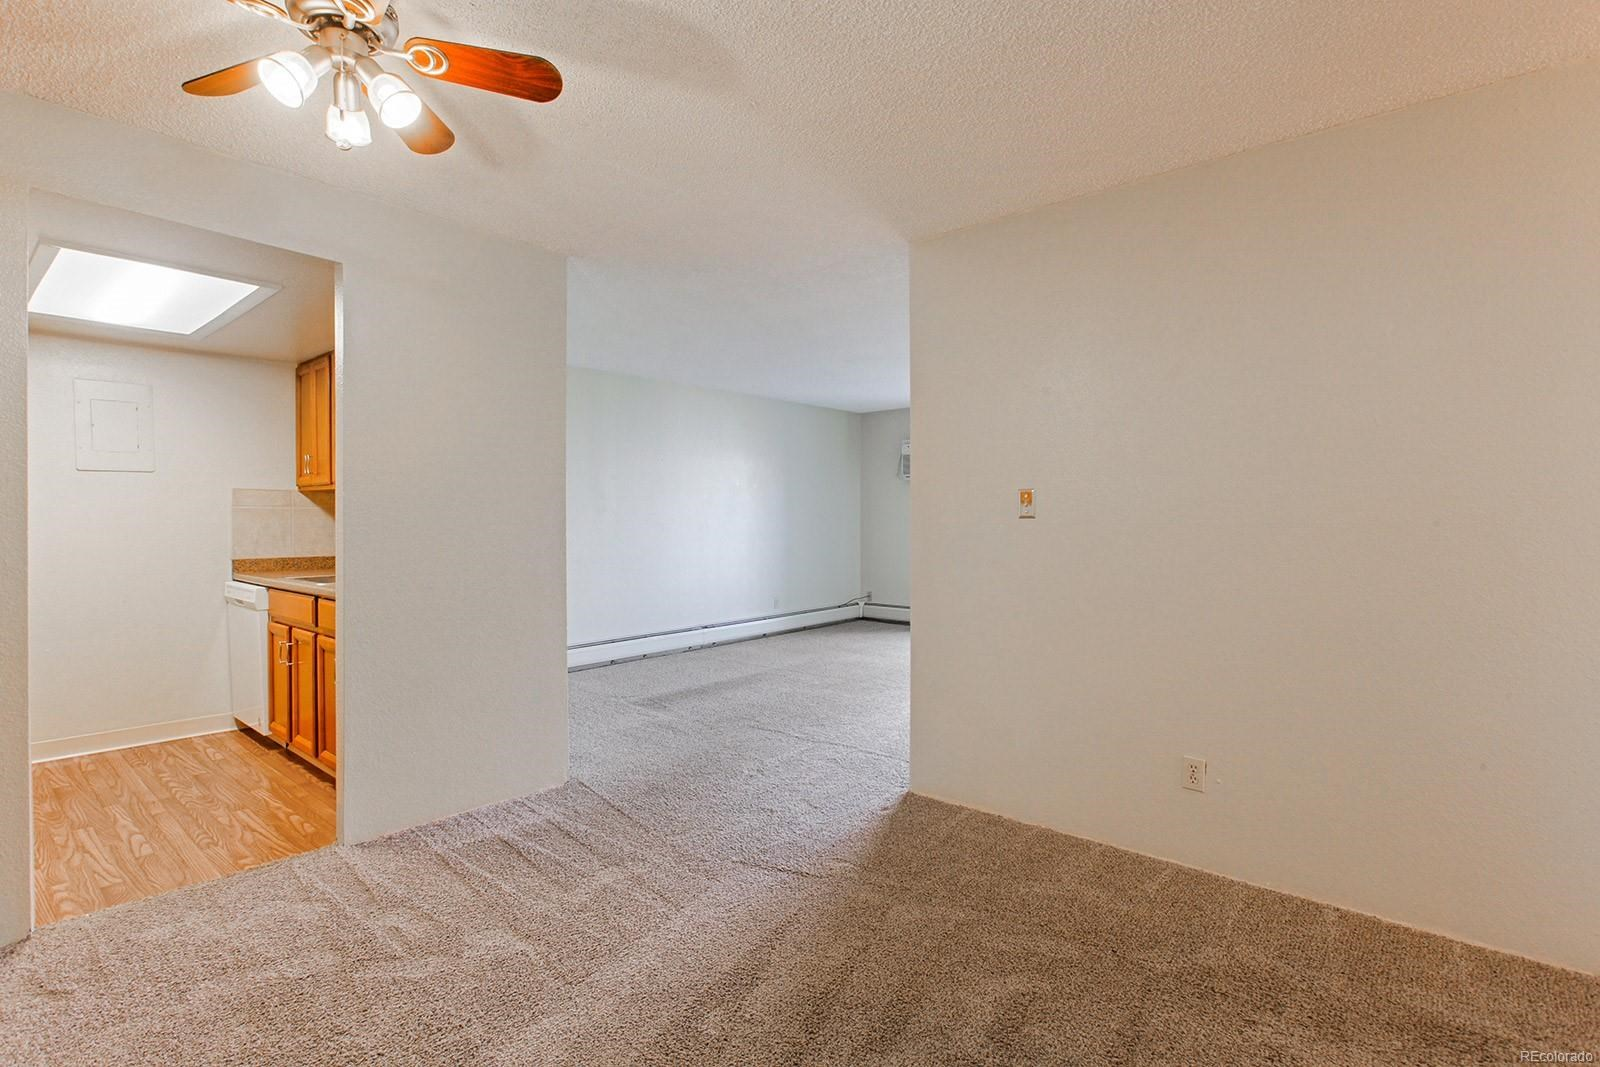 MLS# 3830405 - 8 - 1150 Golden Circle #403, Golden, CO 80401